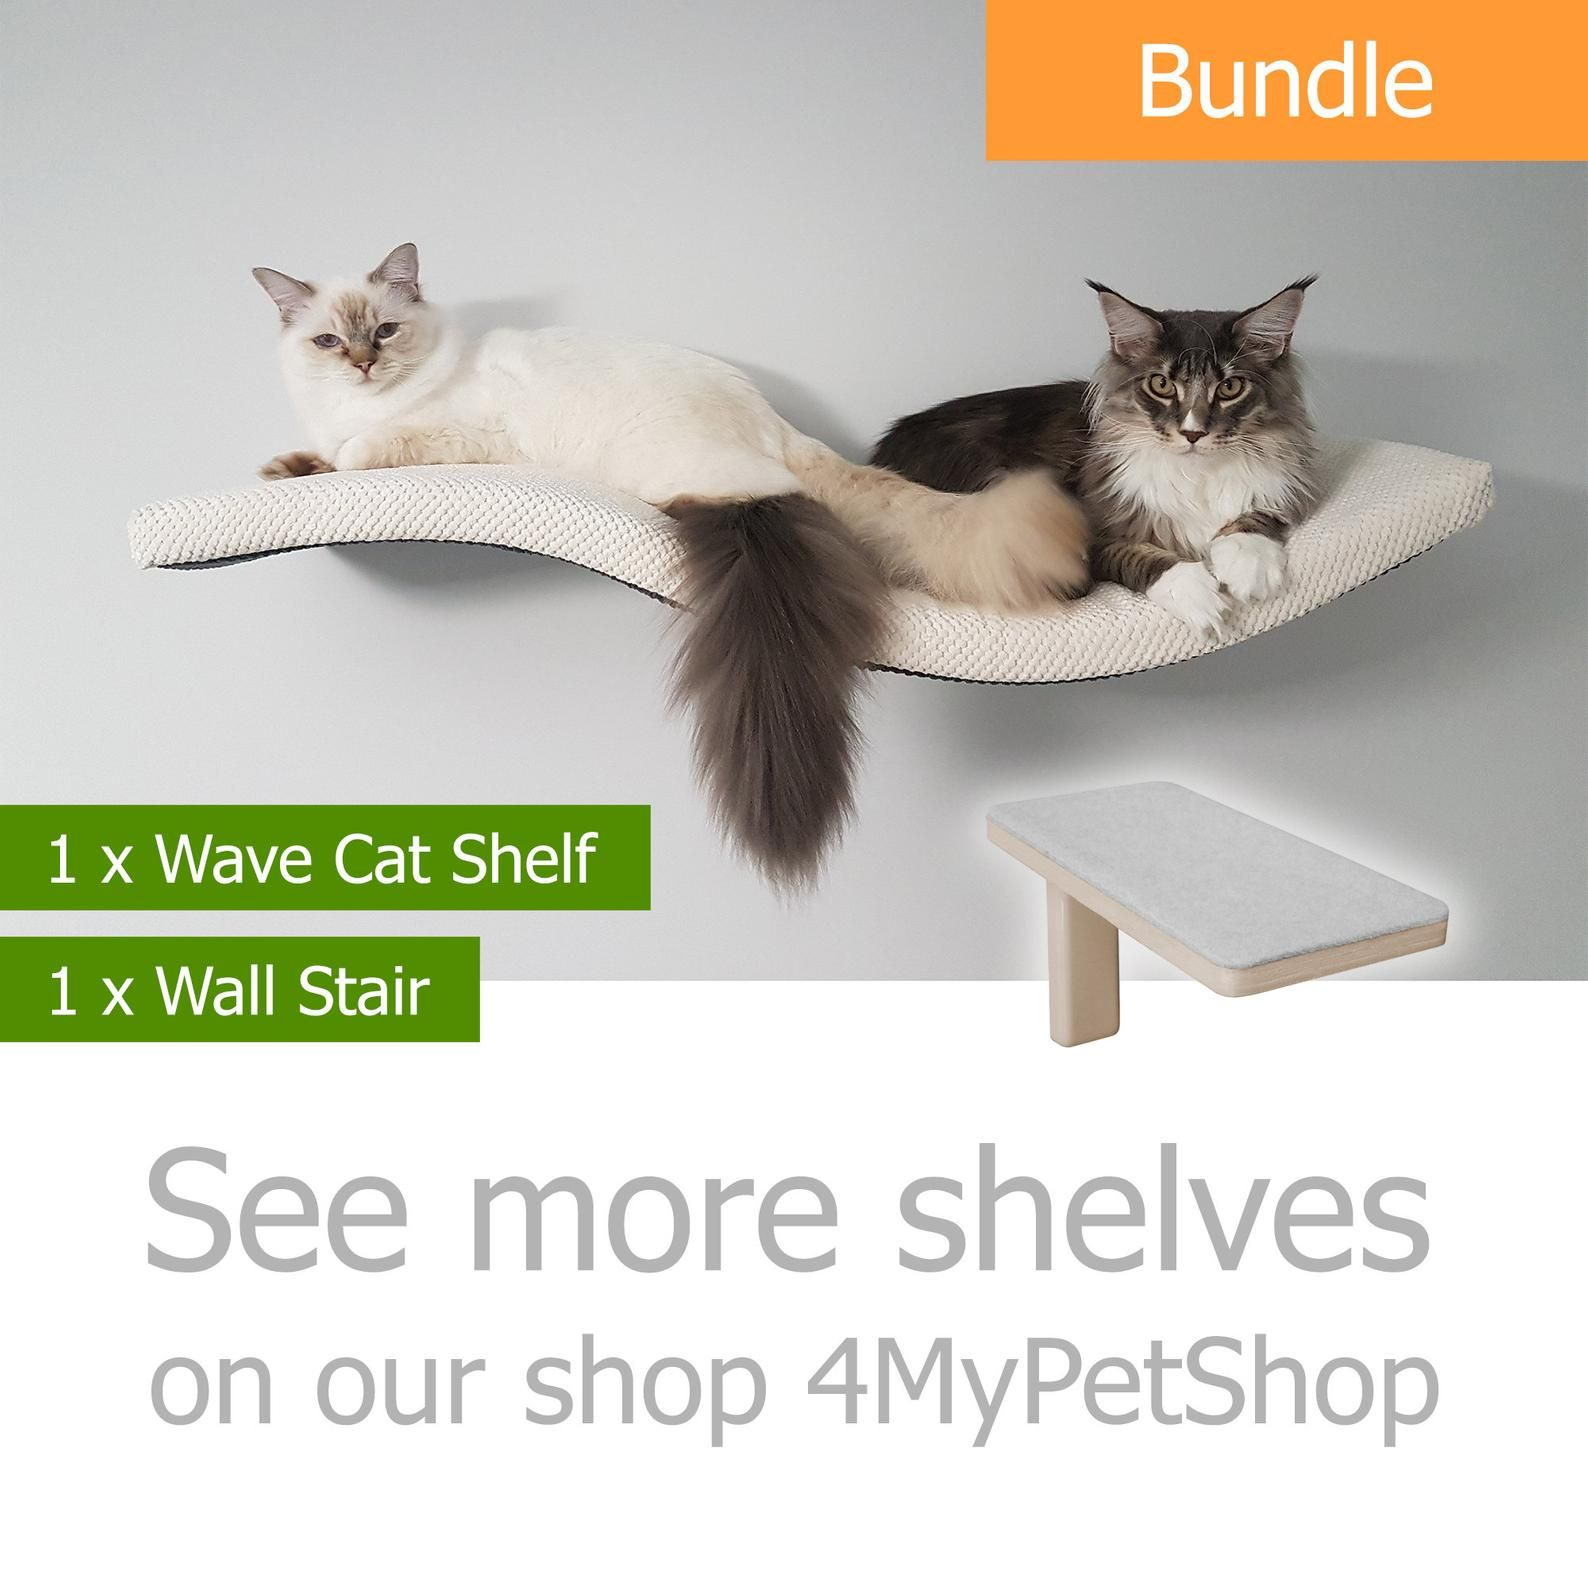 Wave 95 Ur Bundle 1 1 Cat Shelf Cat Shelves Cat Furniture Cat Bed Cat Wall Shelves Curved Cat Perch Wall Shelf Gift Kitten Cat Stair Step In 2020 Cat Shelves Cat